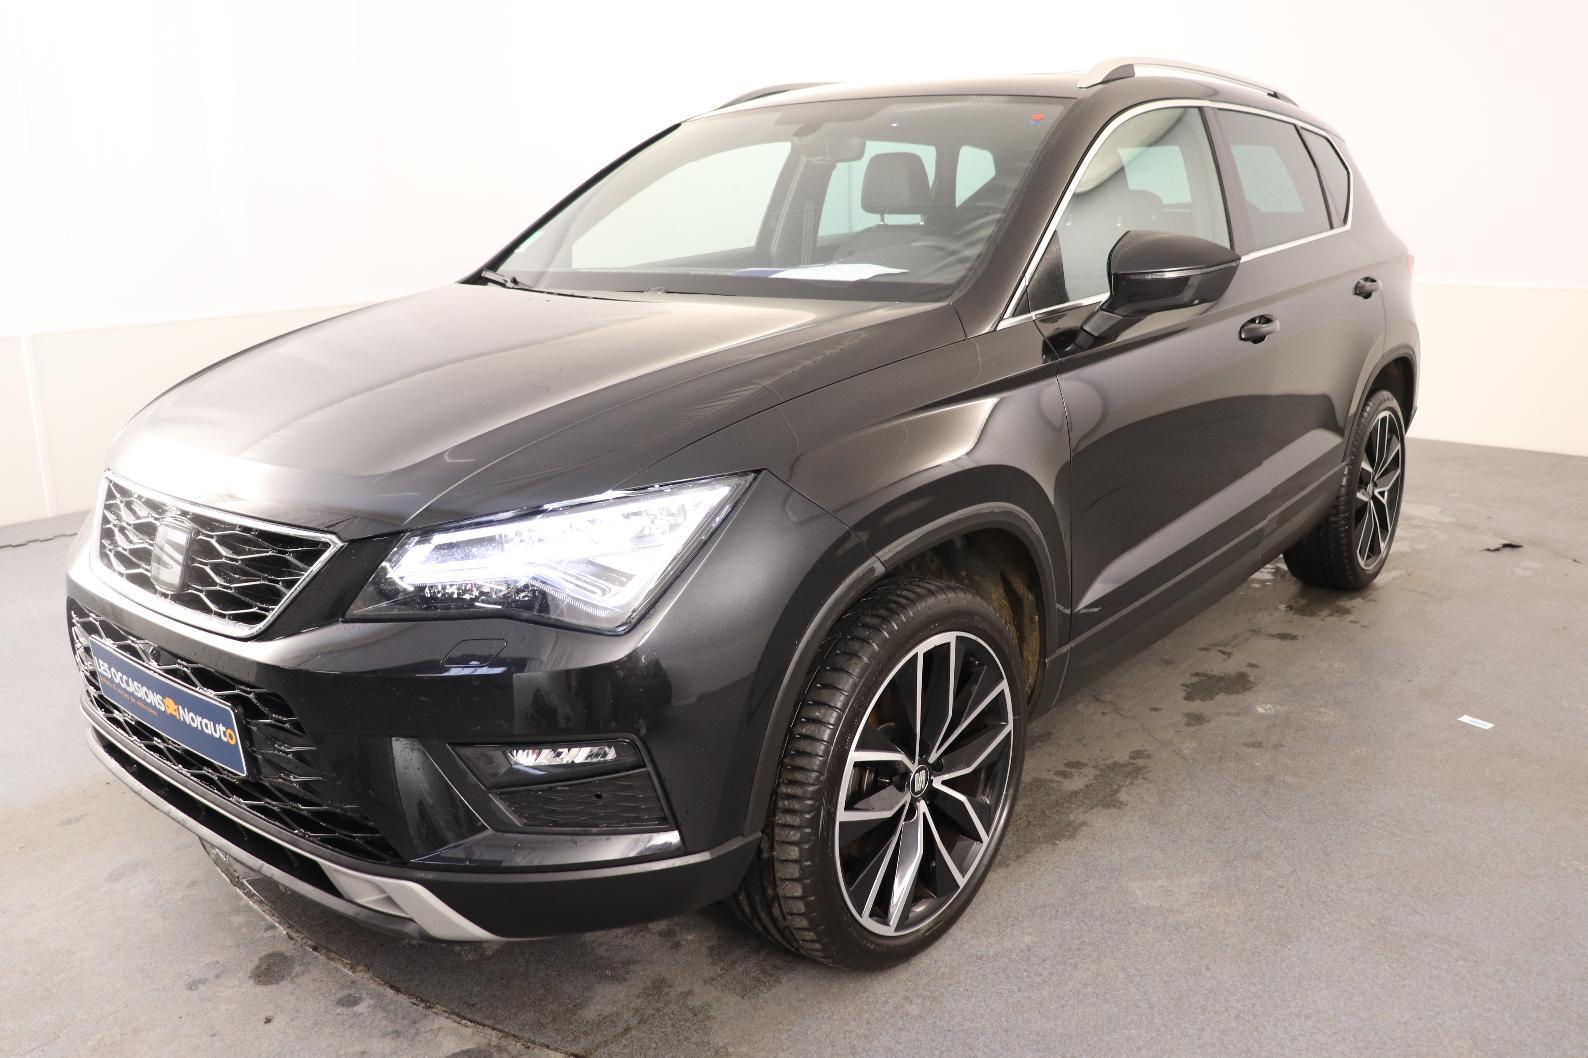 SEAT Ateca 1.5 TSI 150 ch ACT Start/Stop Xcellence